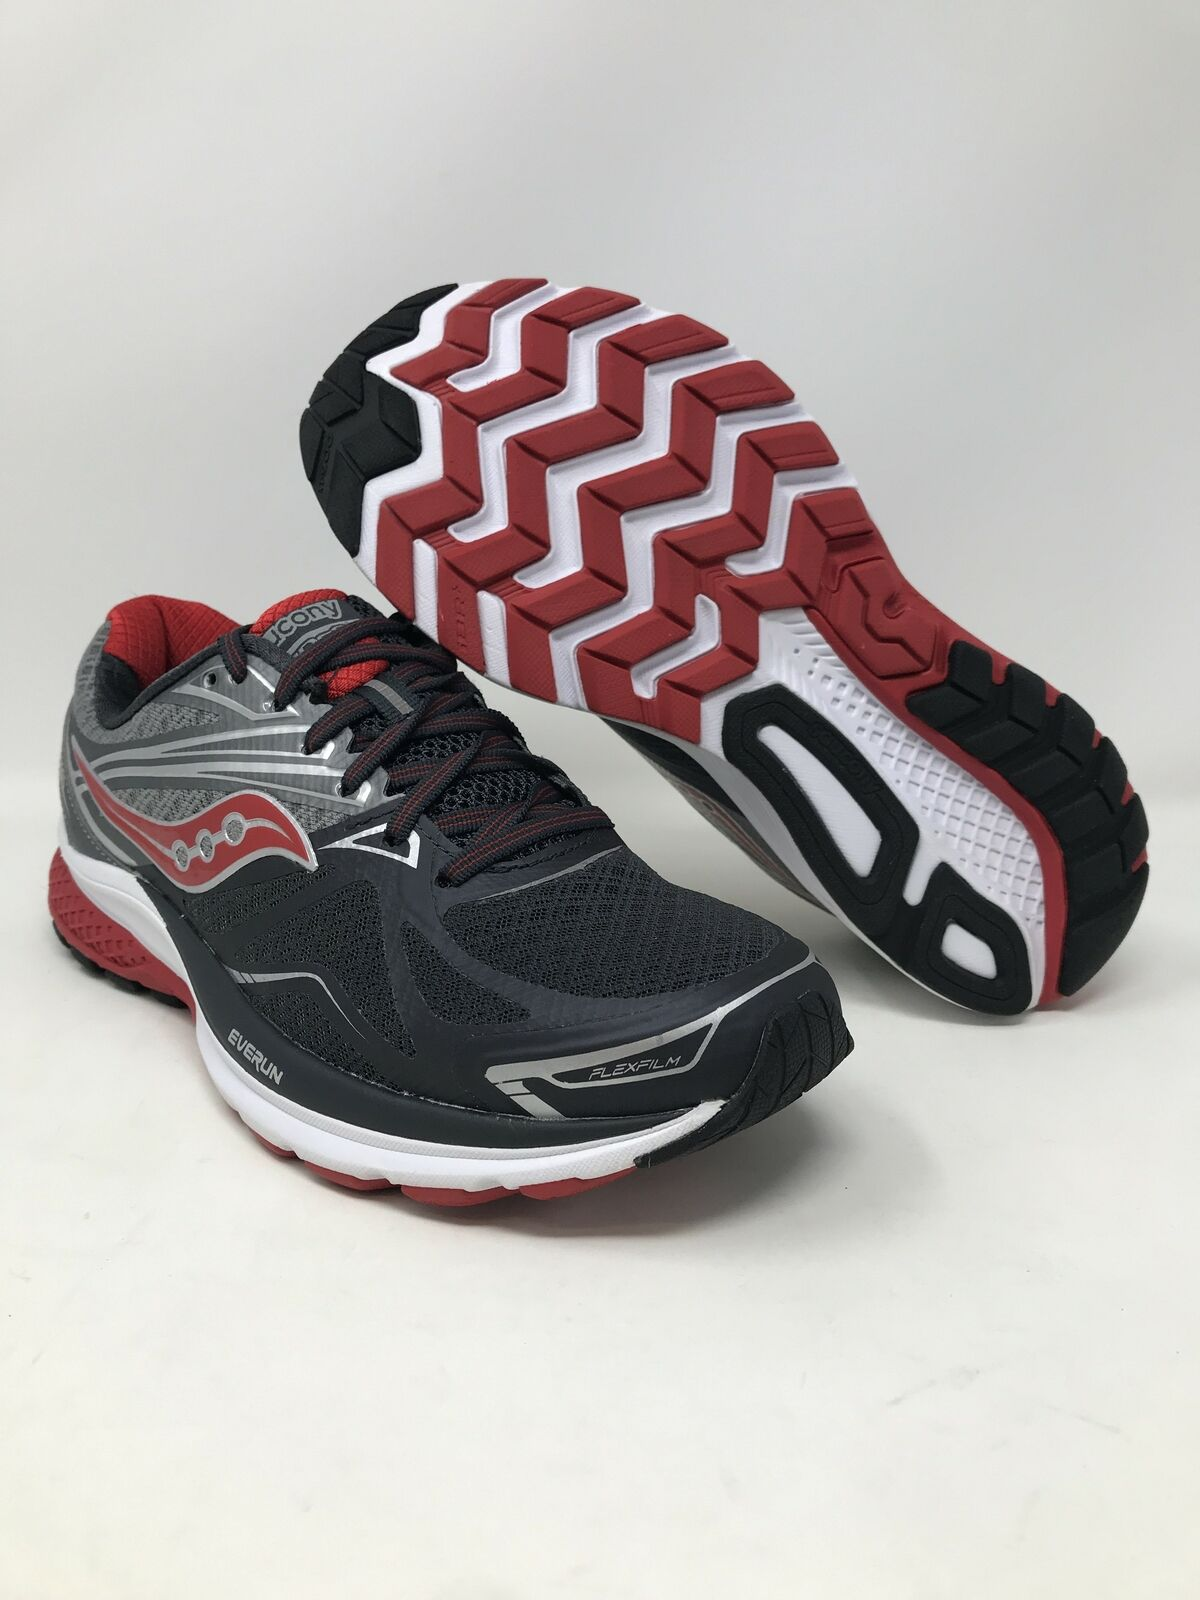 Saucony Men's Ride 9 Running shoes,  Grey Charcoal Red, 7.5 D(M) US  cheap sale